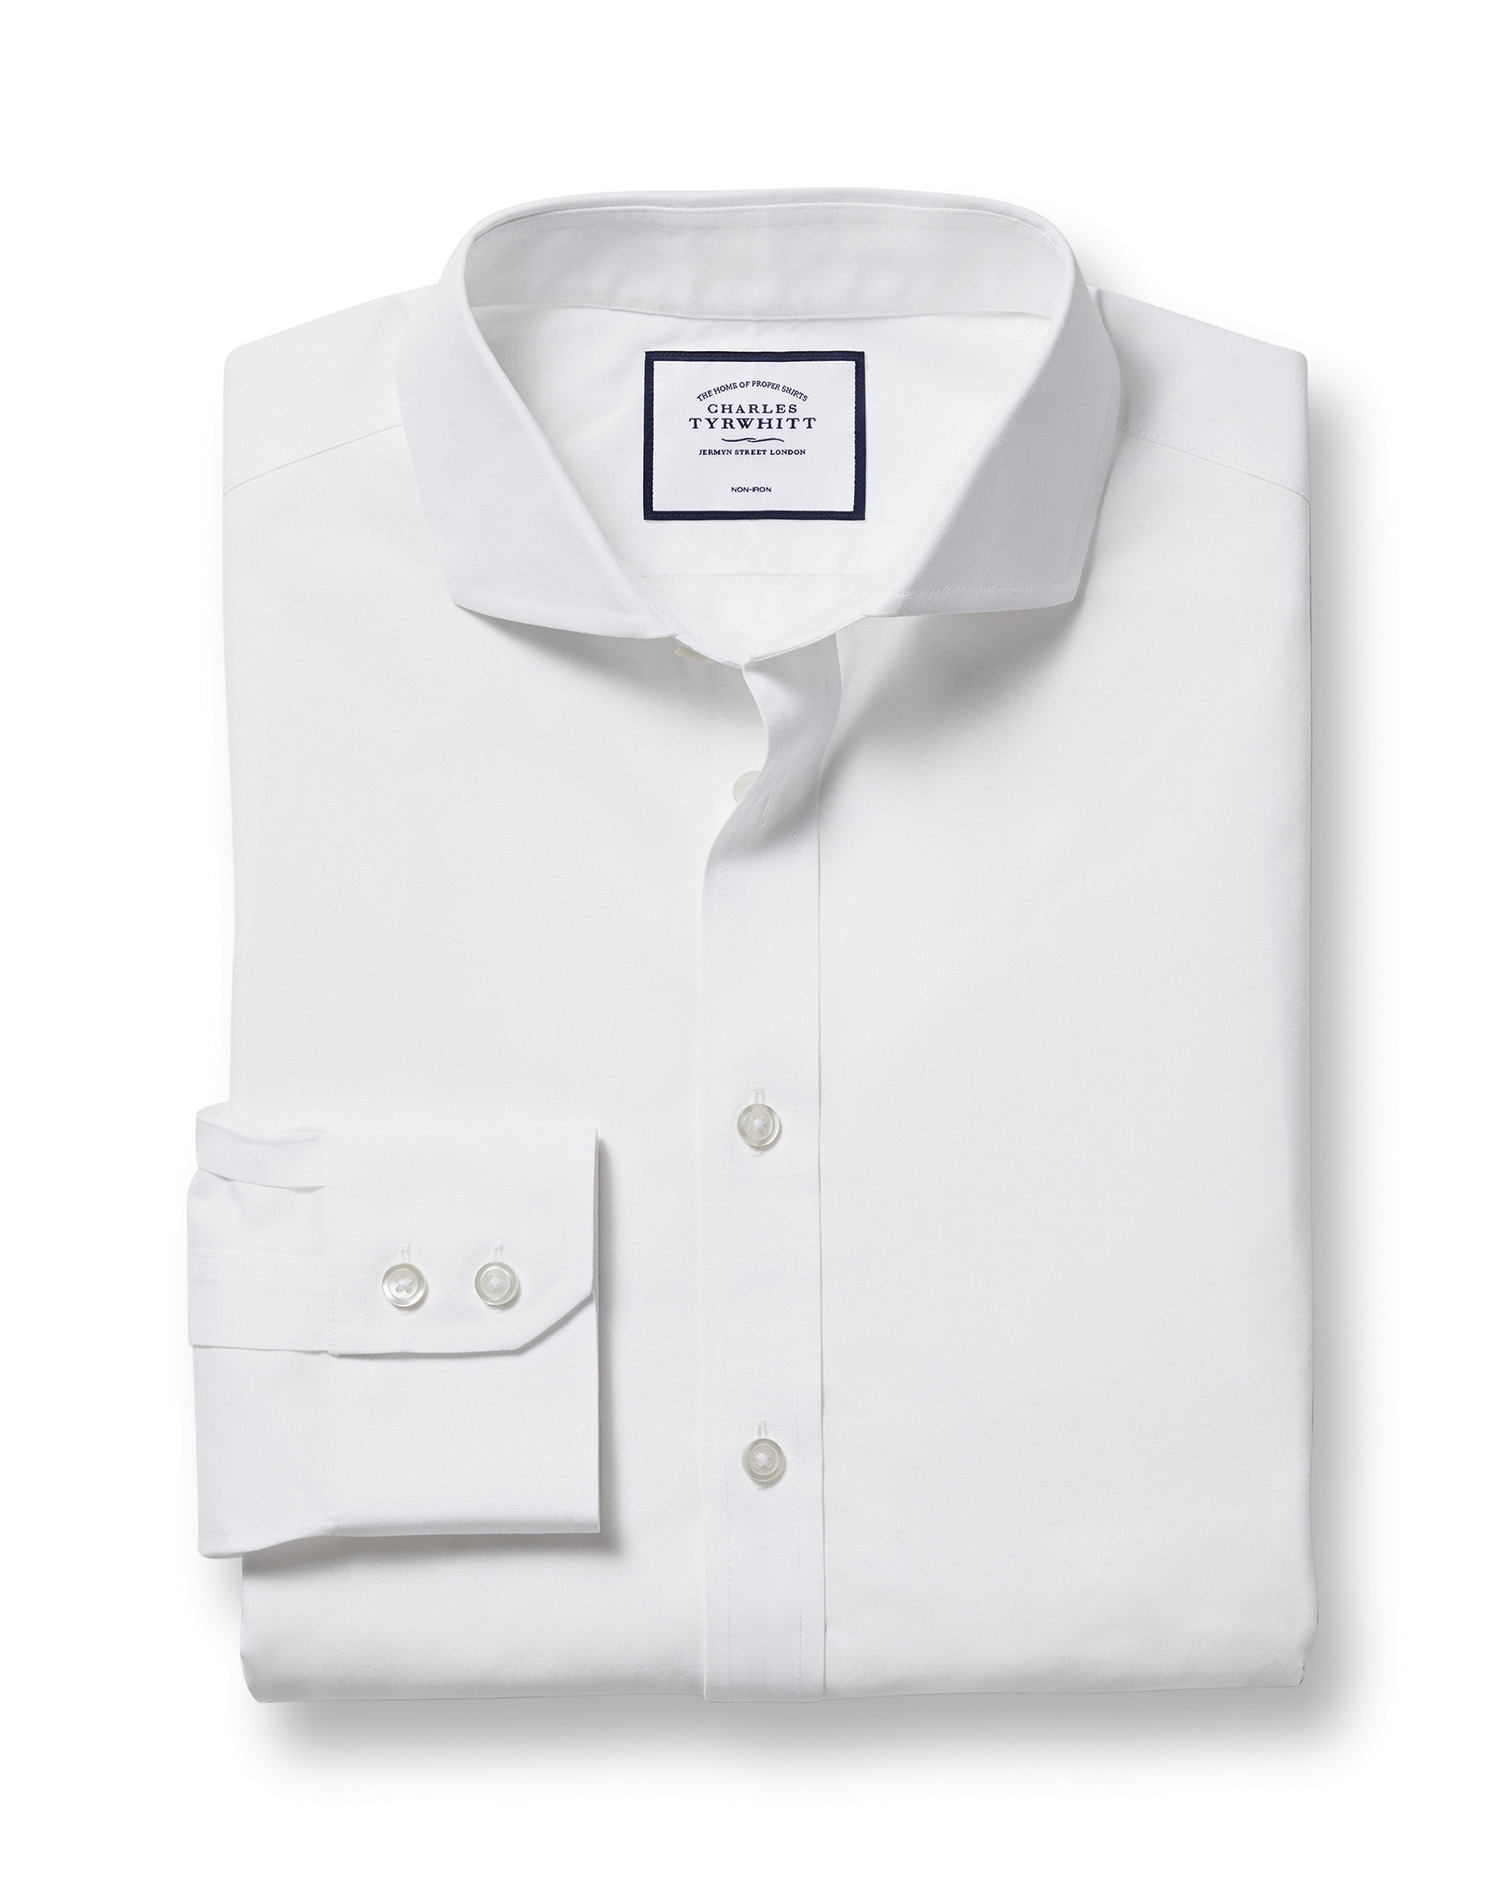 Classic fit spread collar non iron poplin white shirt for Spread collar dress shirt without tie